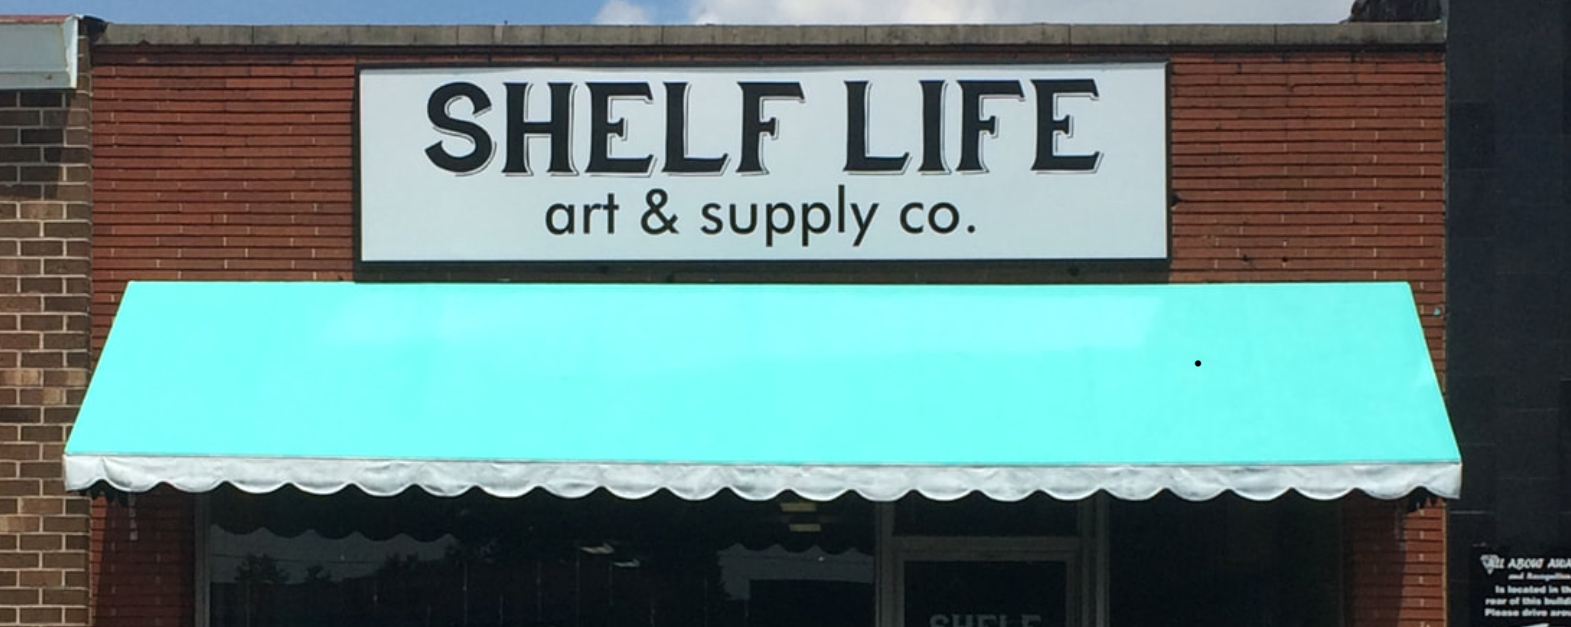 Shelf Life Art & Supply Co.